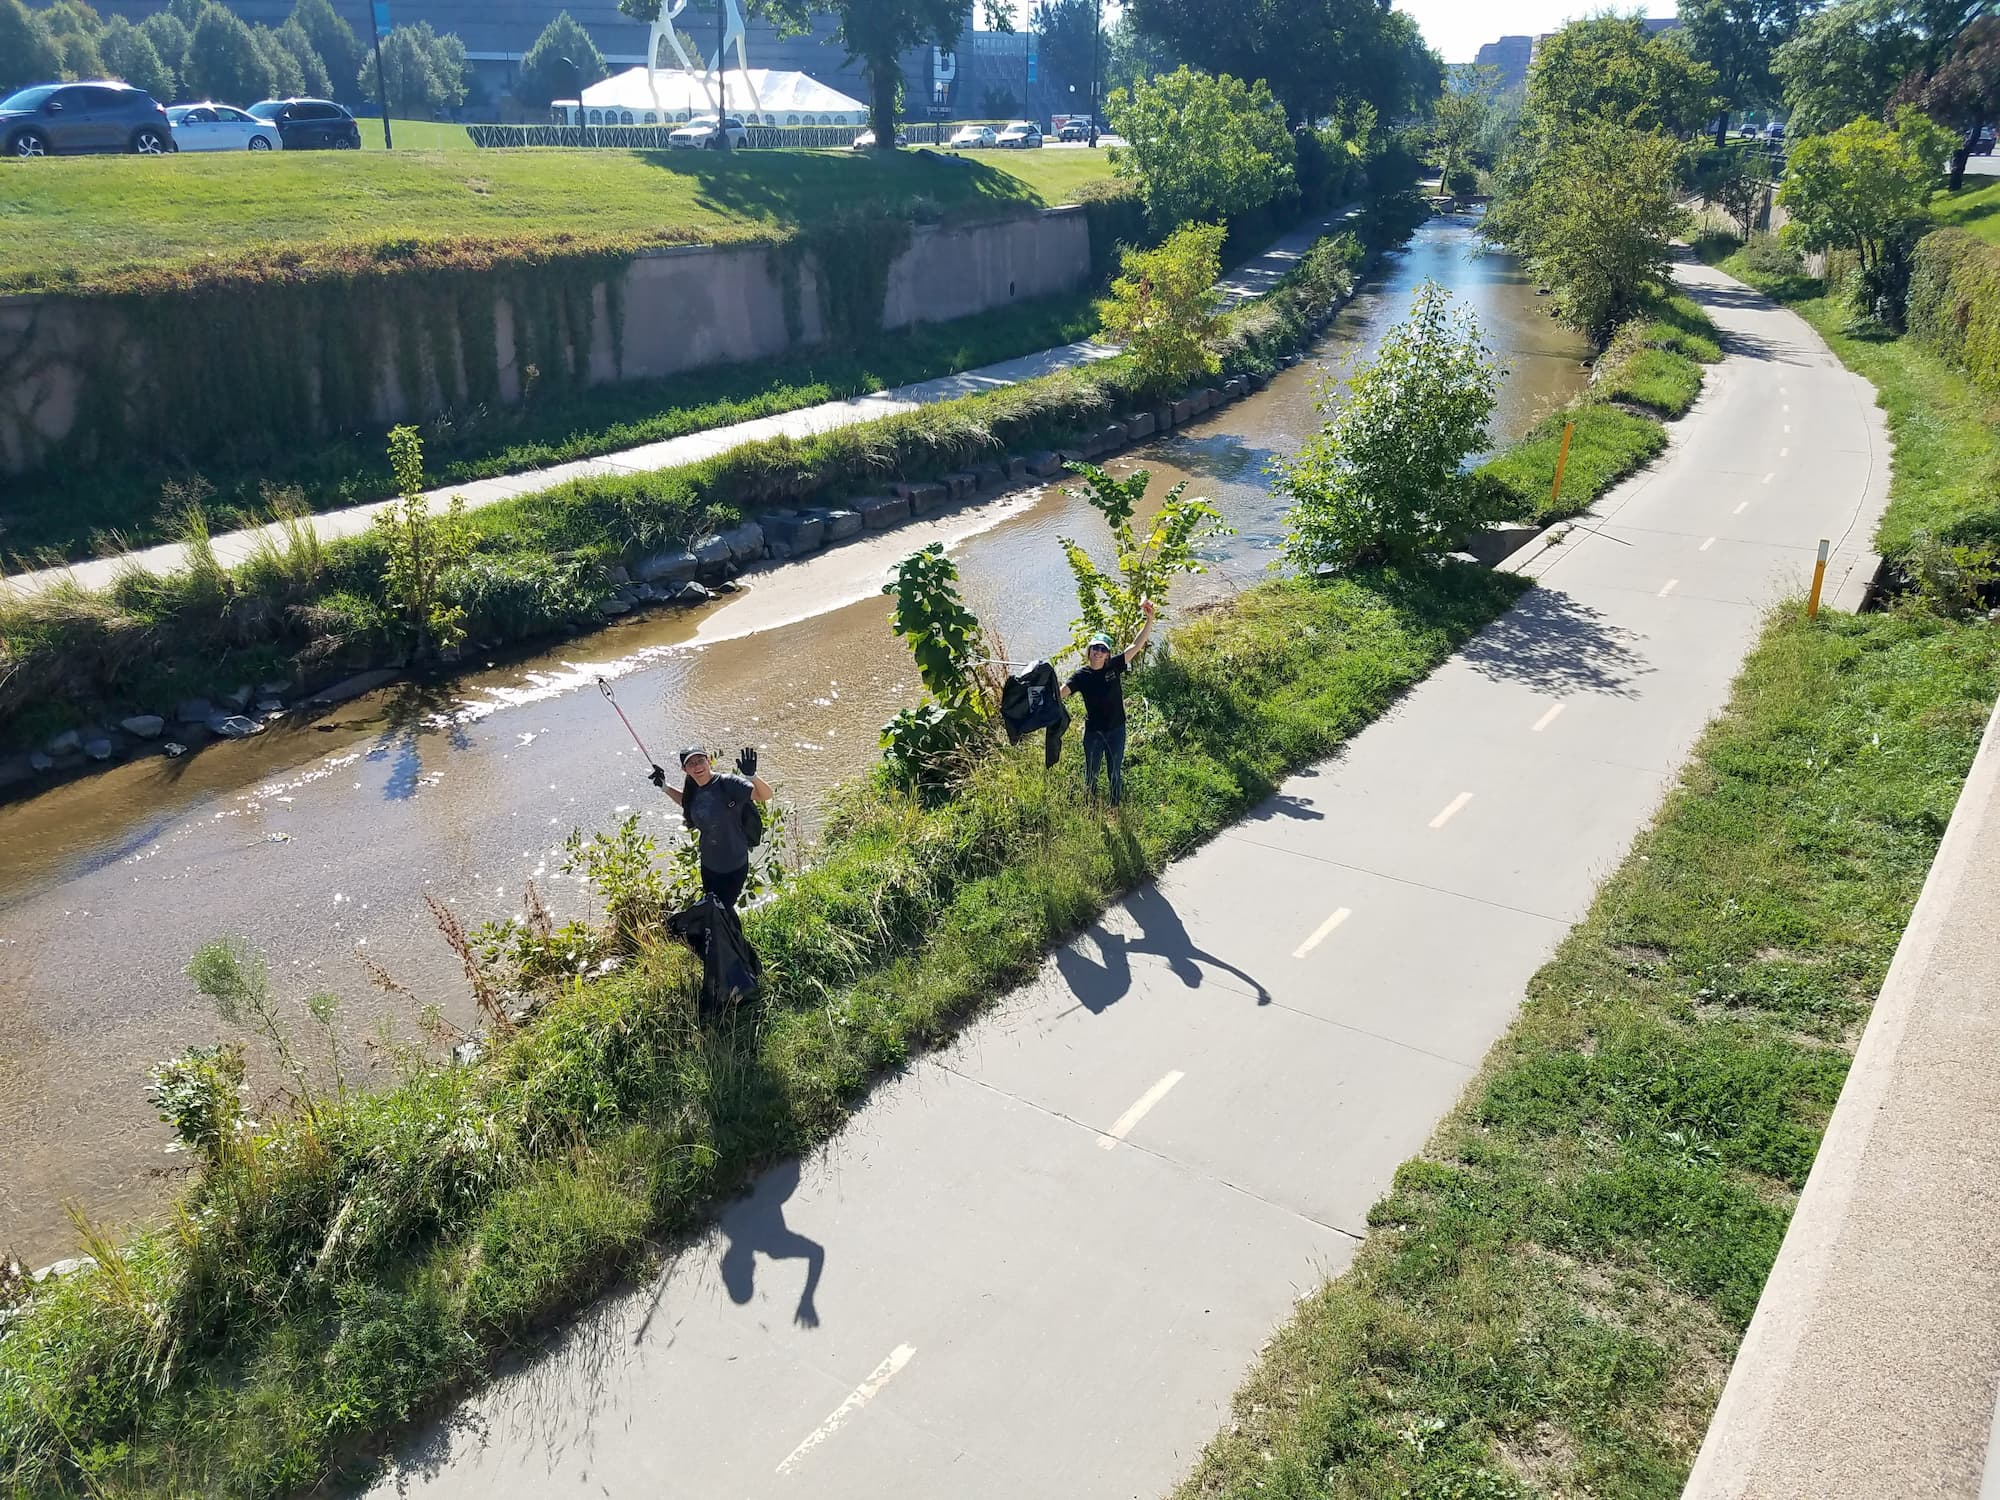 WTS Students Participate in a Clean Up of Cherry Creek